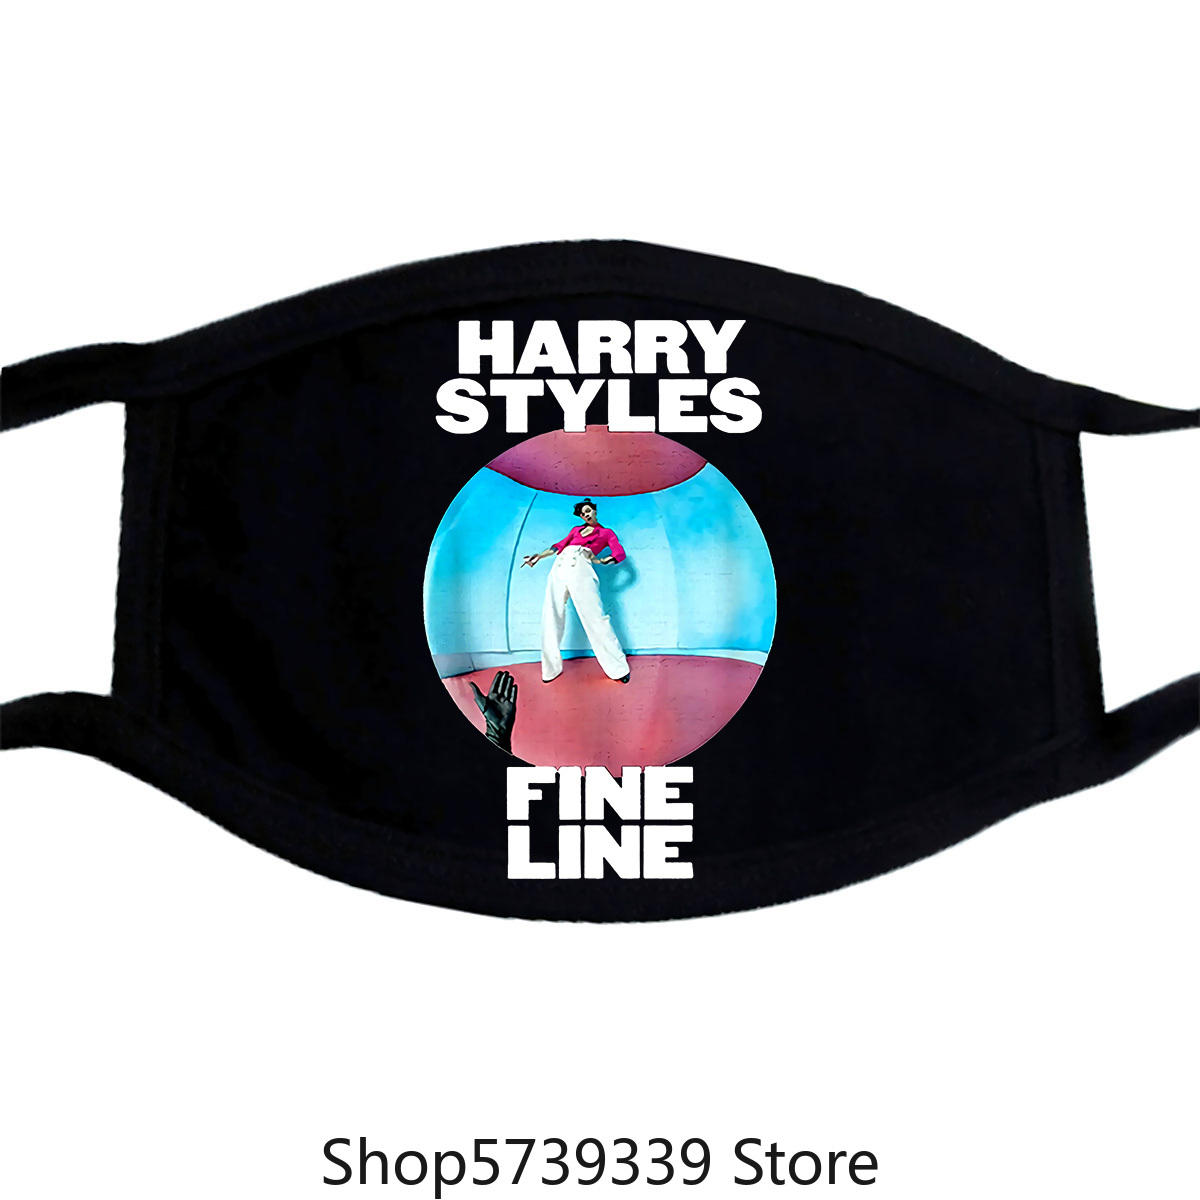 Harry Styles-Fine Line Black Mask Washable Reusable Mask For Unisex Black